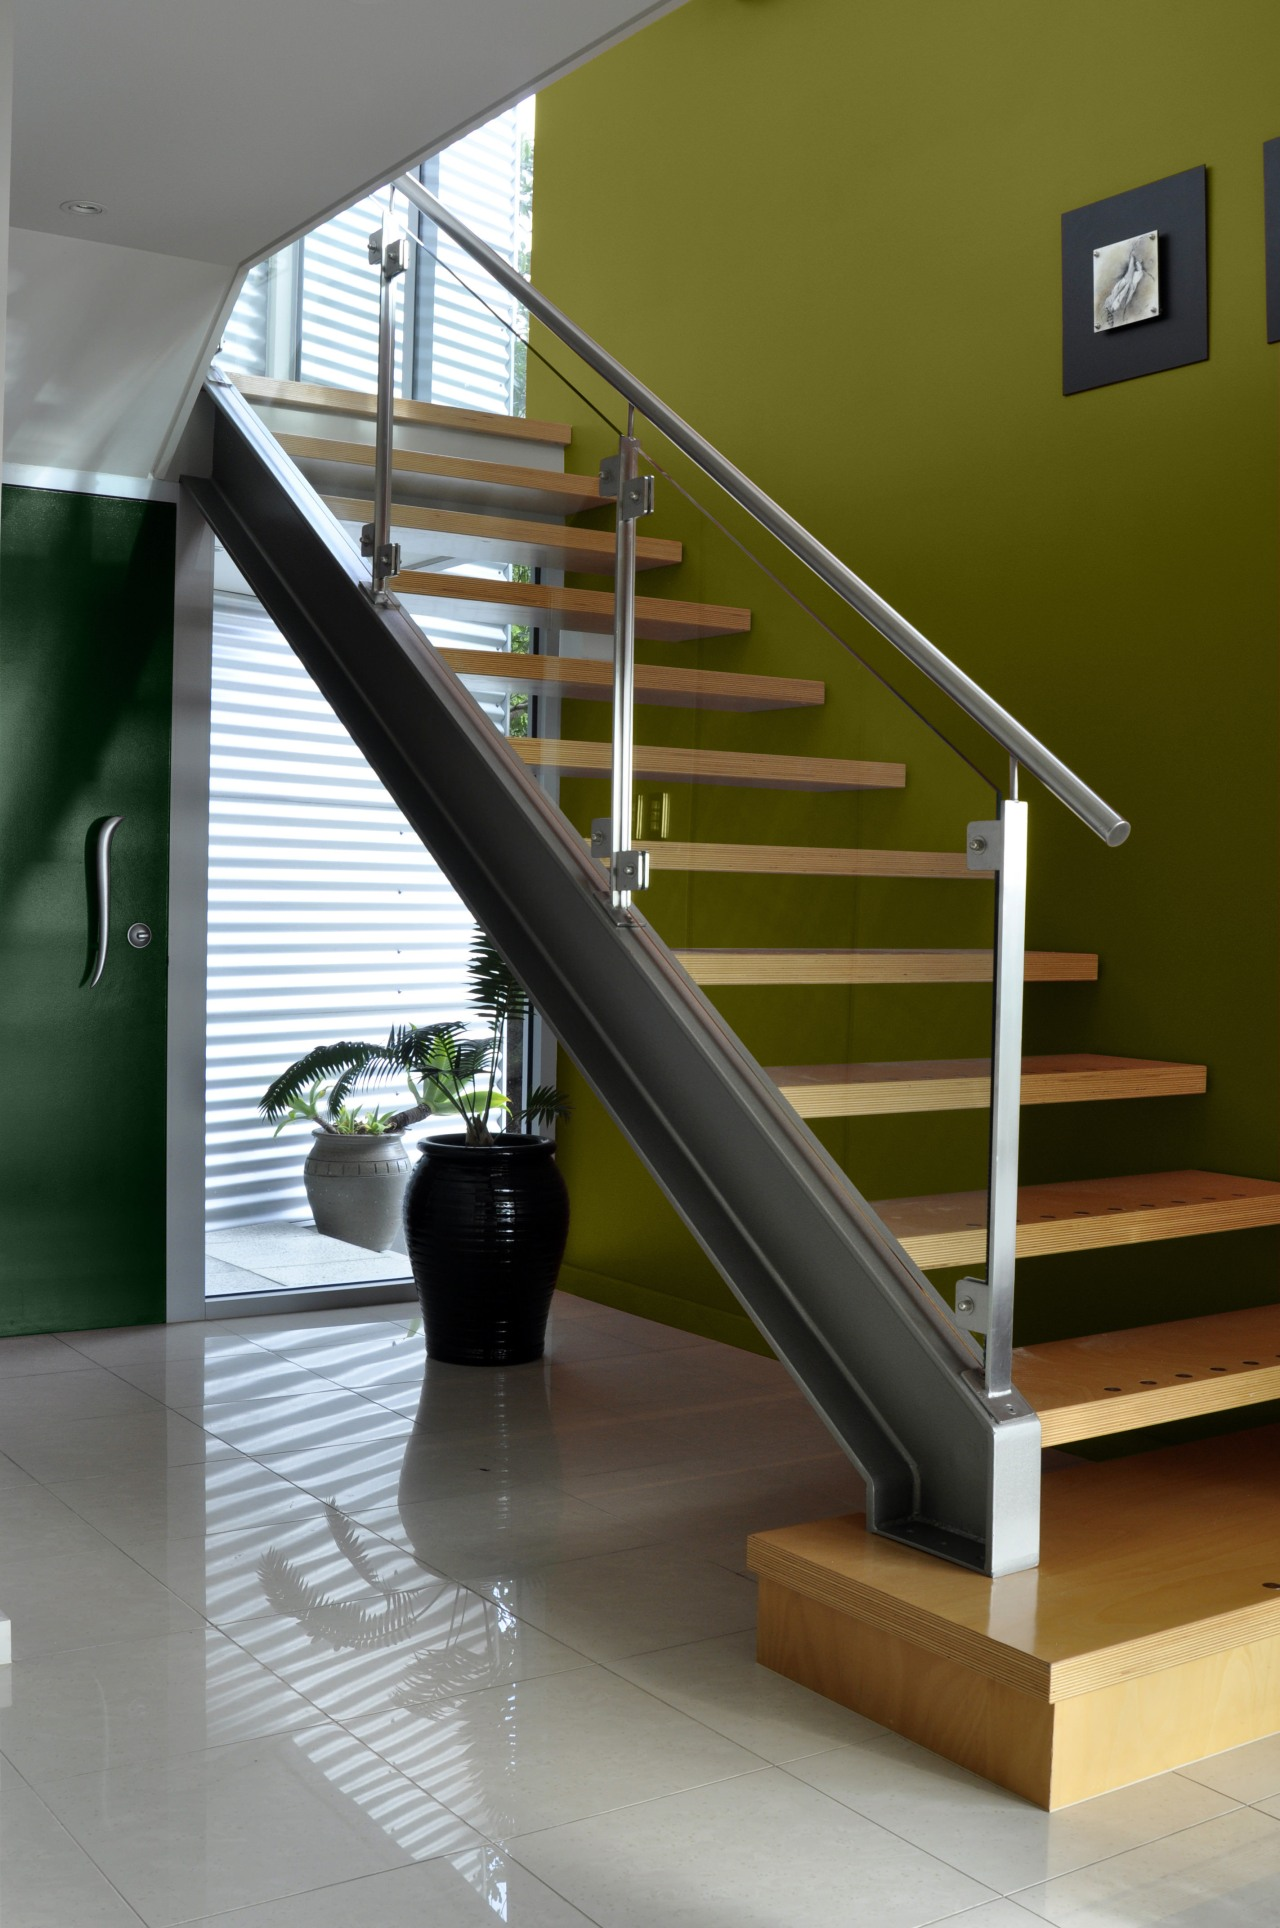 View of the stairway which features paint from baluster, floor, glass, handrail, home, interior design, product design, stairs, brown